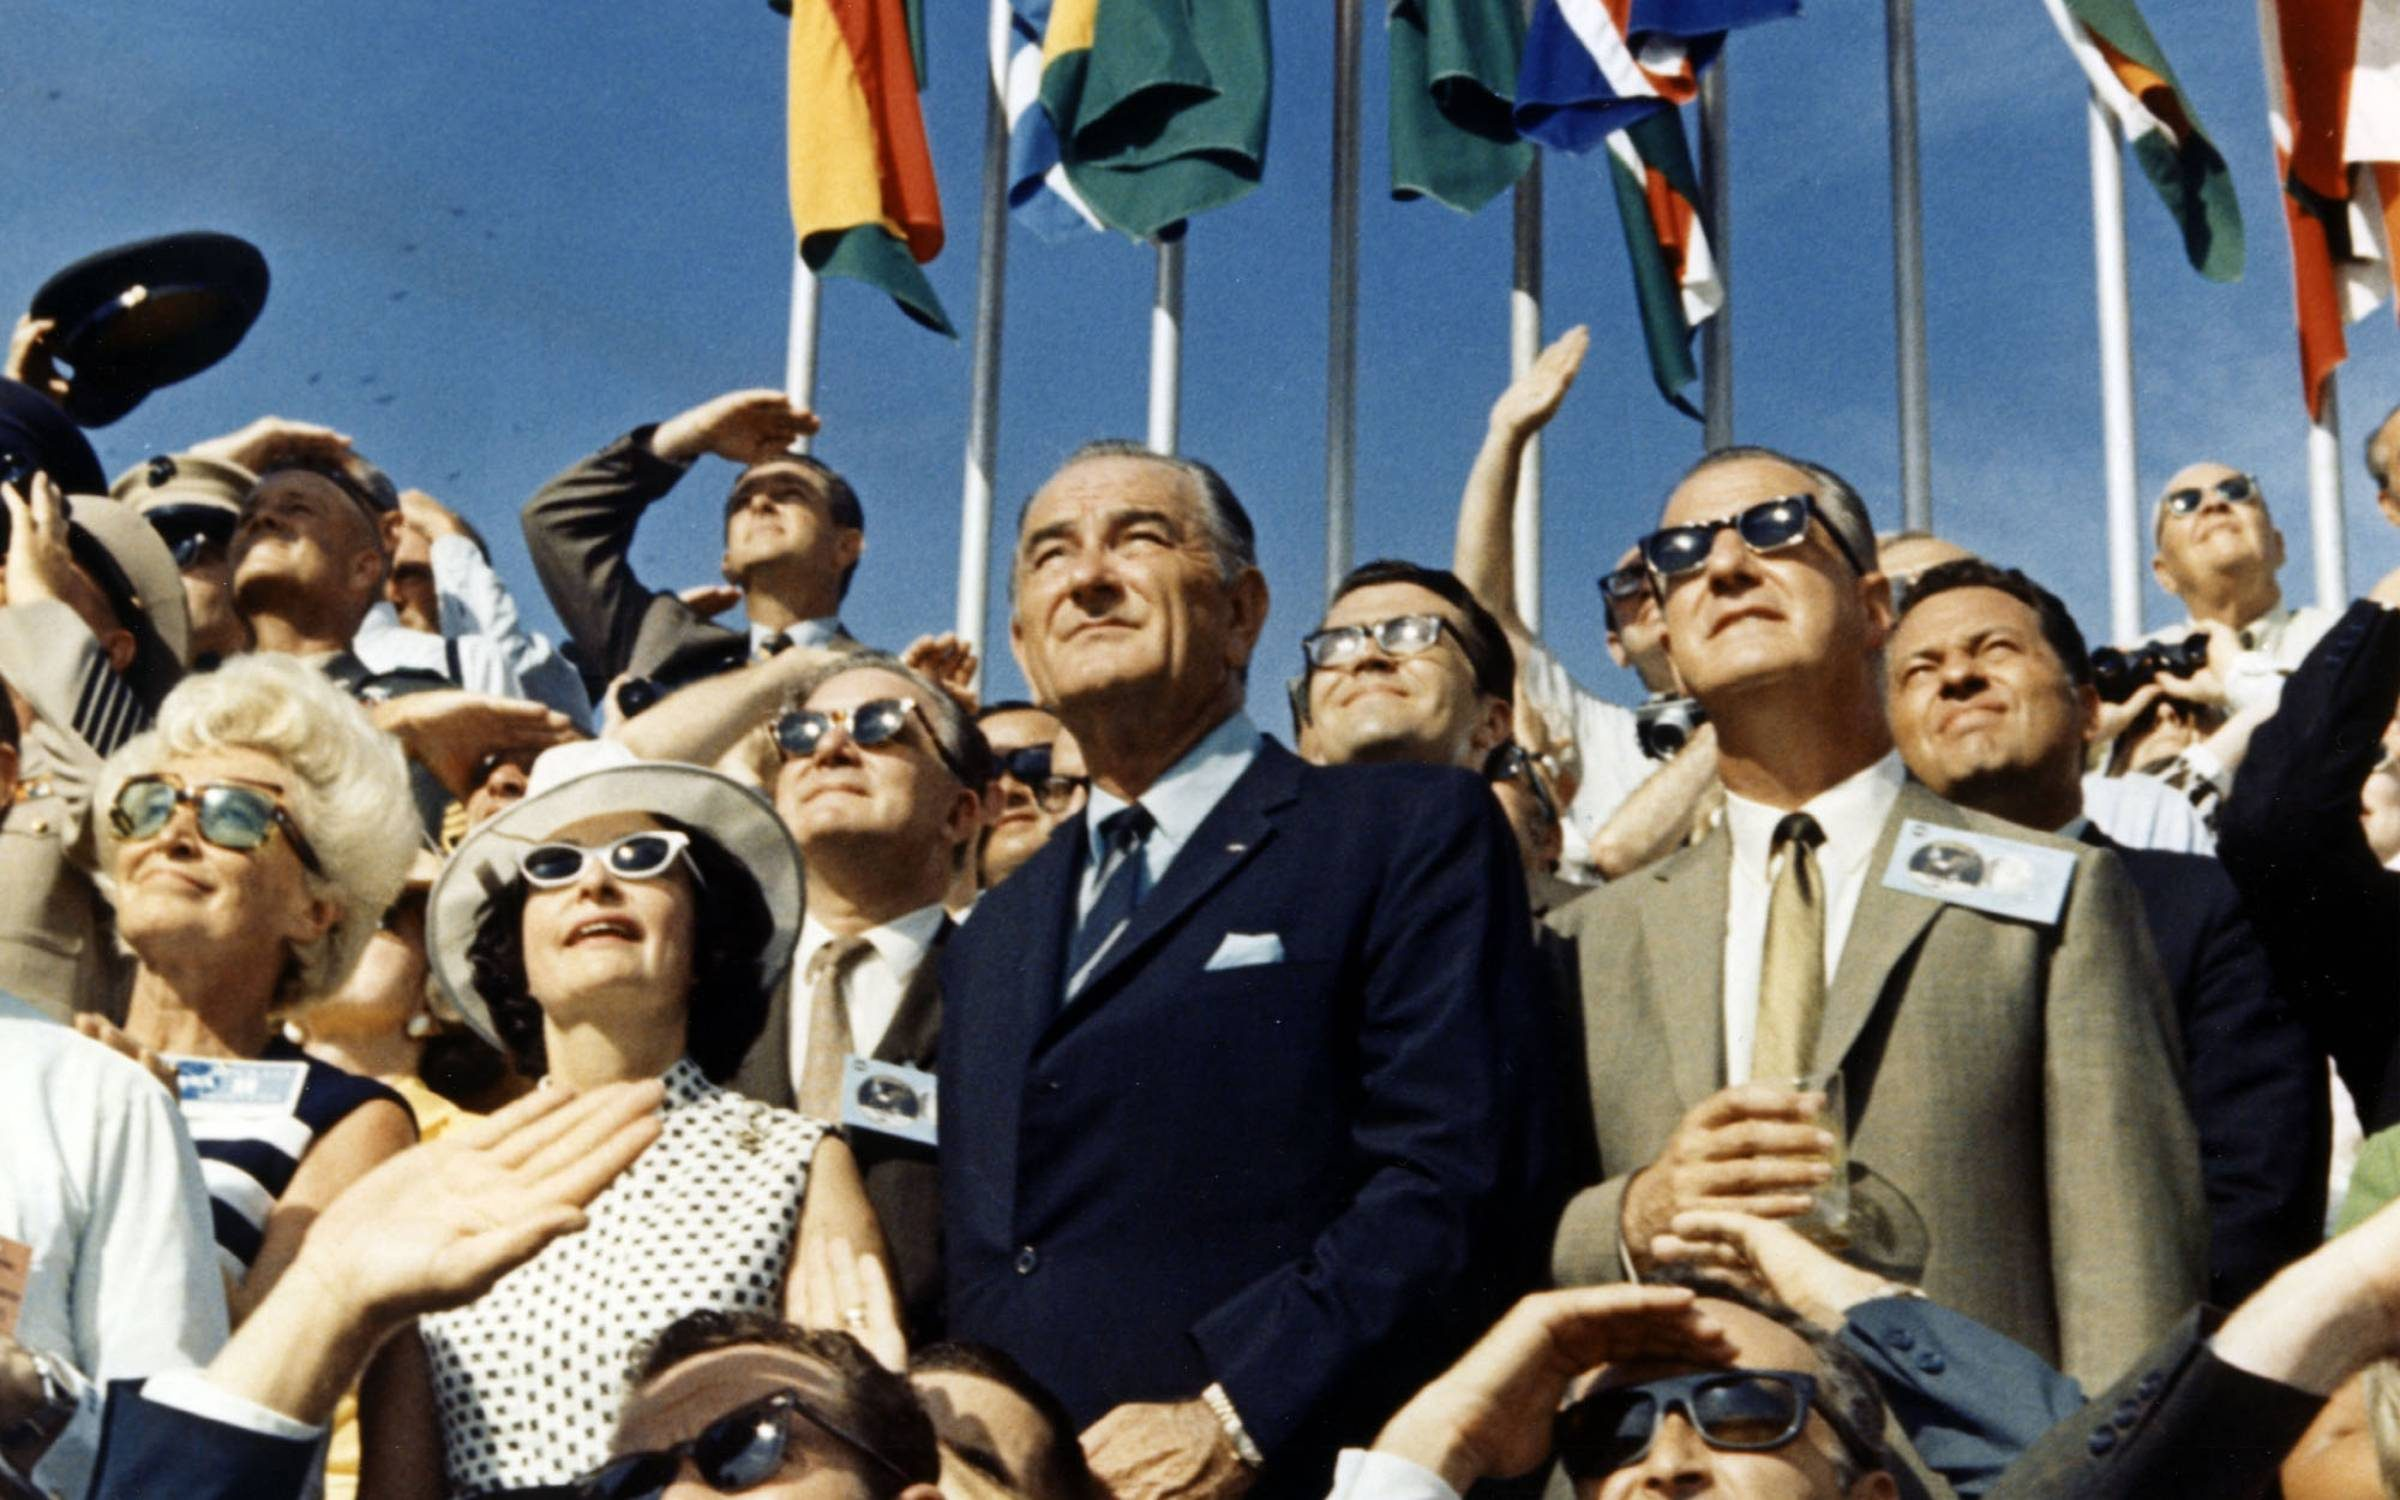 30Th Anniversary Of Apollo 11 Landing On The Moon (4 Of 20): Vice President Spiro Agnew And Former President Lyndon Johnson View The Liftoff Of Apollo 11 From The Stands Located At The Kennedy Space Center Vip Viewing Site. The Apollo 11 Saturn V Space Vehicle Lifted Off On July 16, 1969 And Was Injected Into Lunar Orbit On July 19 With Astronauts Neil A. Armstrong, Michael Collins And Edwin E. Aldrin Jr., At 9:32 A.M. Edt July 16, 1969, From Kennedy Space Center's Launch Complex In Florida. The Lm (Lunar Module) Landed On The Moon On July 20, 1969 And Returned To The Command Module On July 21. The Command Module Left Lunar Orbit On July 22 And Returned To Earth On July 24, 1969. Apollo 11 Splashed Down In The Pacific Ocean On 24 July 1969 At 12:50:35 P.M. Edt After A Mission Elapsed Time Of 195 Hrs, 18 Mins, 35 Secs. (Photo By Nasa/Getty Images)